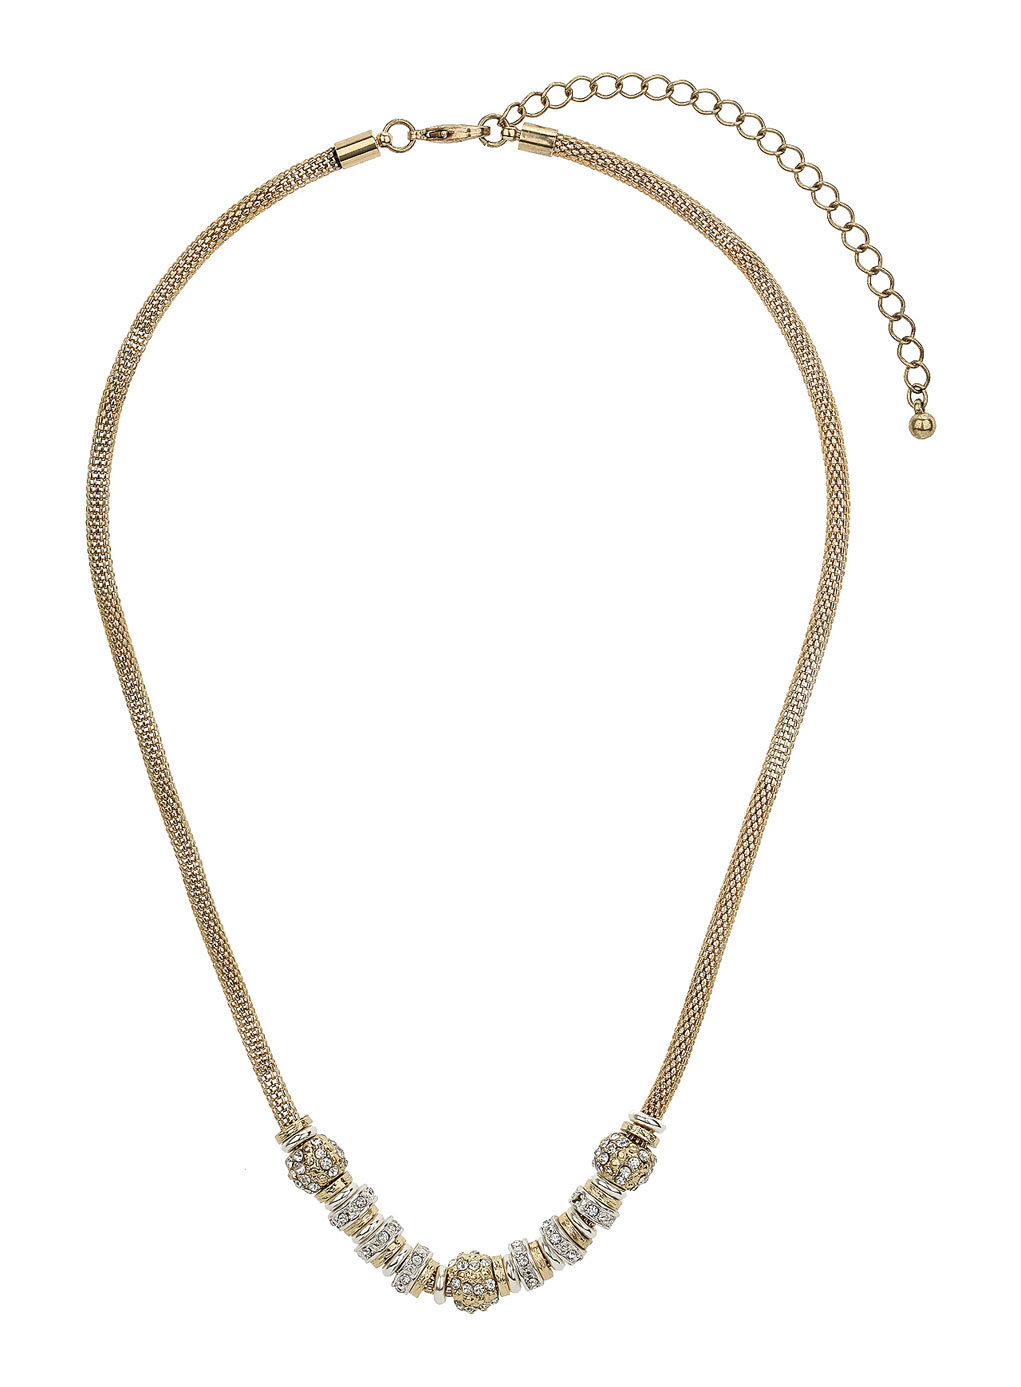 Crystal And Mesh Necklace - secondary colour: silver; predominant colour: gold; occasions: evening, work, occasion; length: mid; size: standard; material: chain/metal; finish: metallic; embellishment: crystals/glass; season: s/s 2014; style: chain (no pendant)